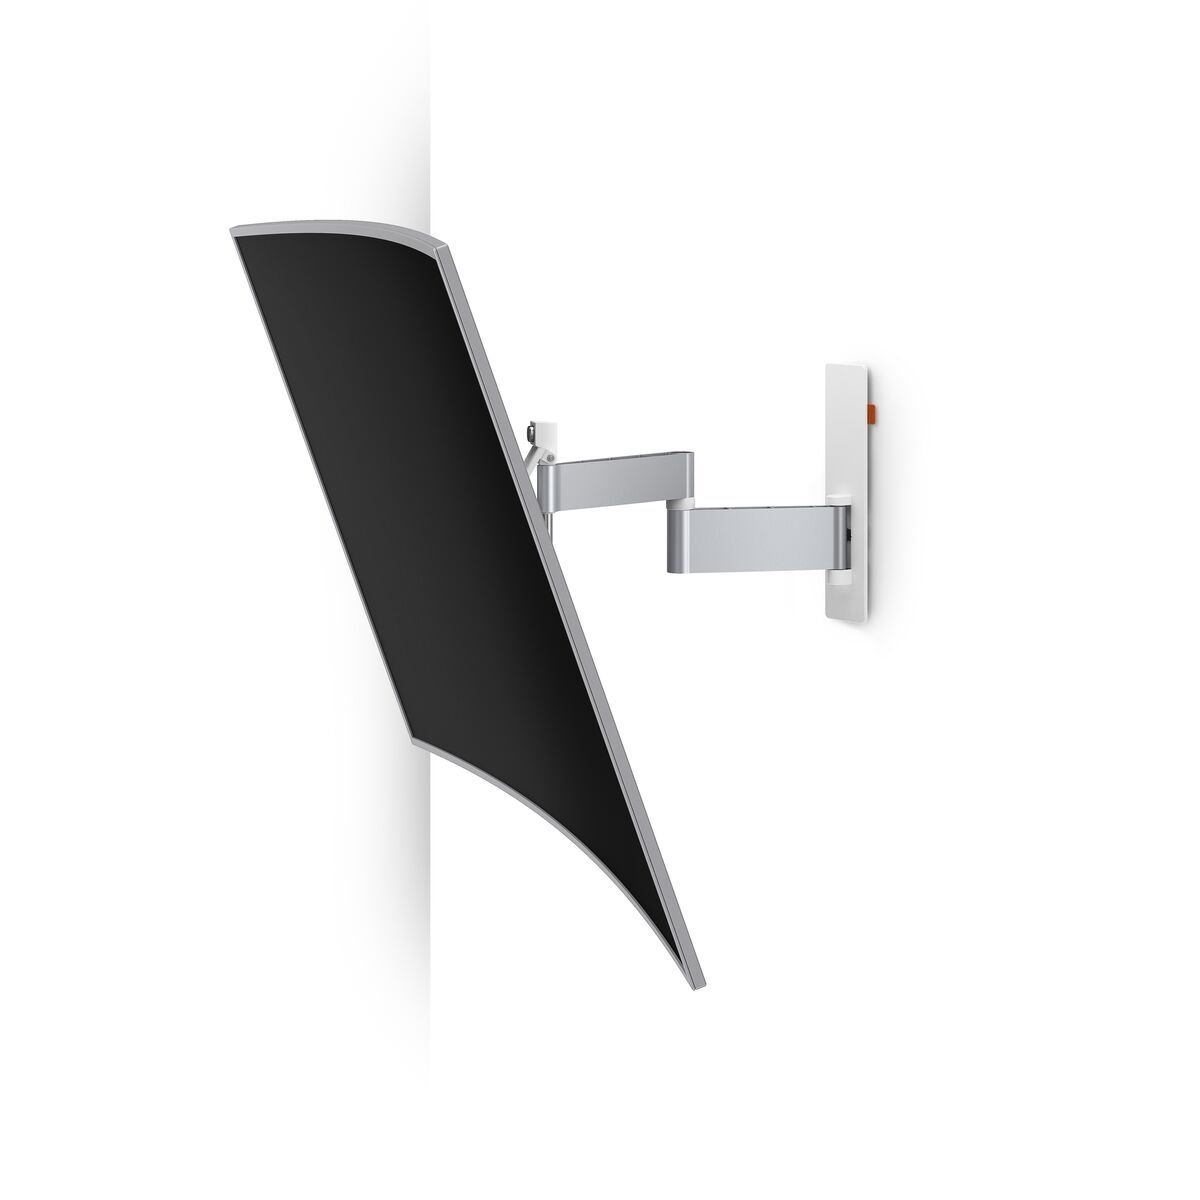 Vogel's WALL 2345 Full-Motion TV Wall Mount (white) - Suitable for 40 up to 65 inch TVs - Full motion (up to 180°) - Tilt up to 20° - Application